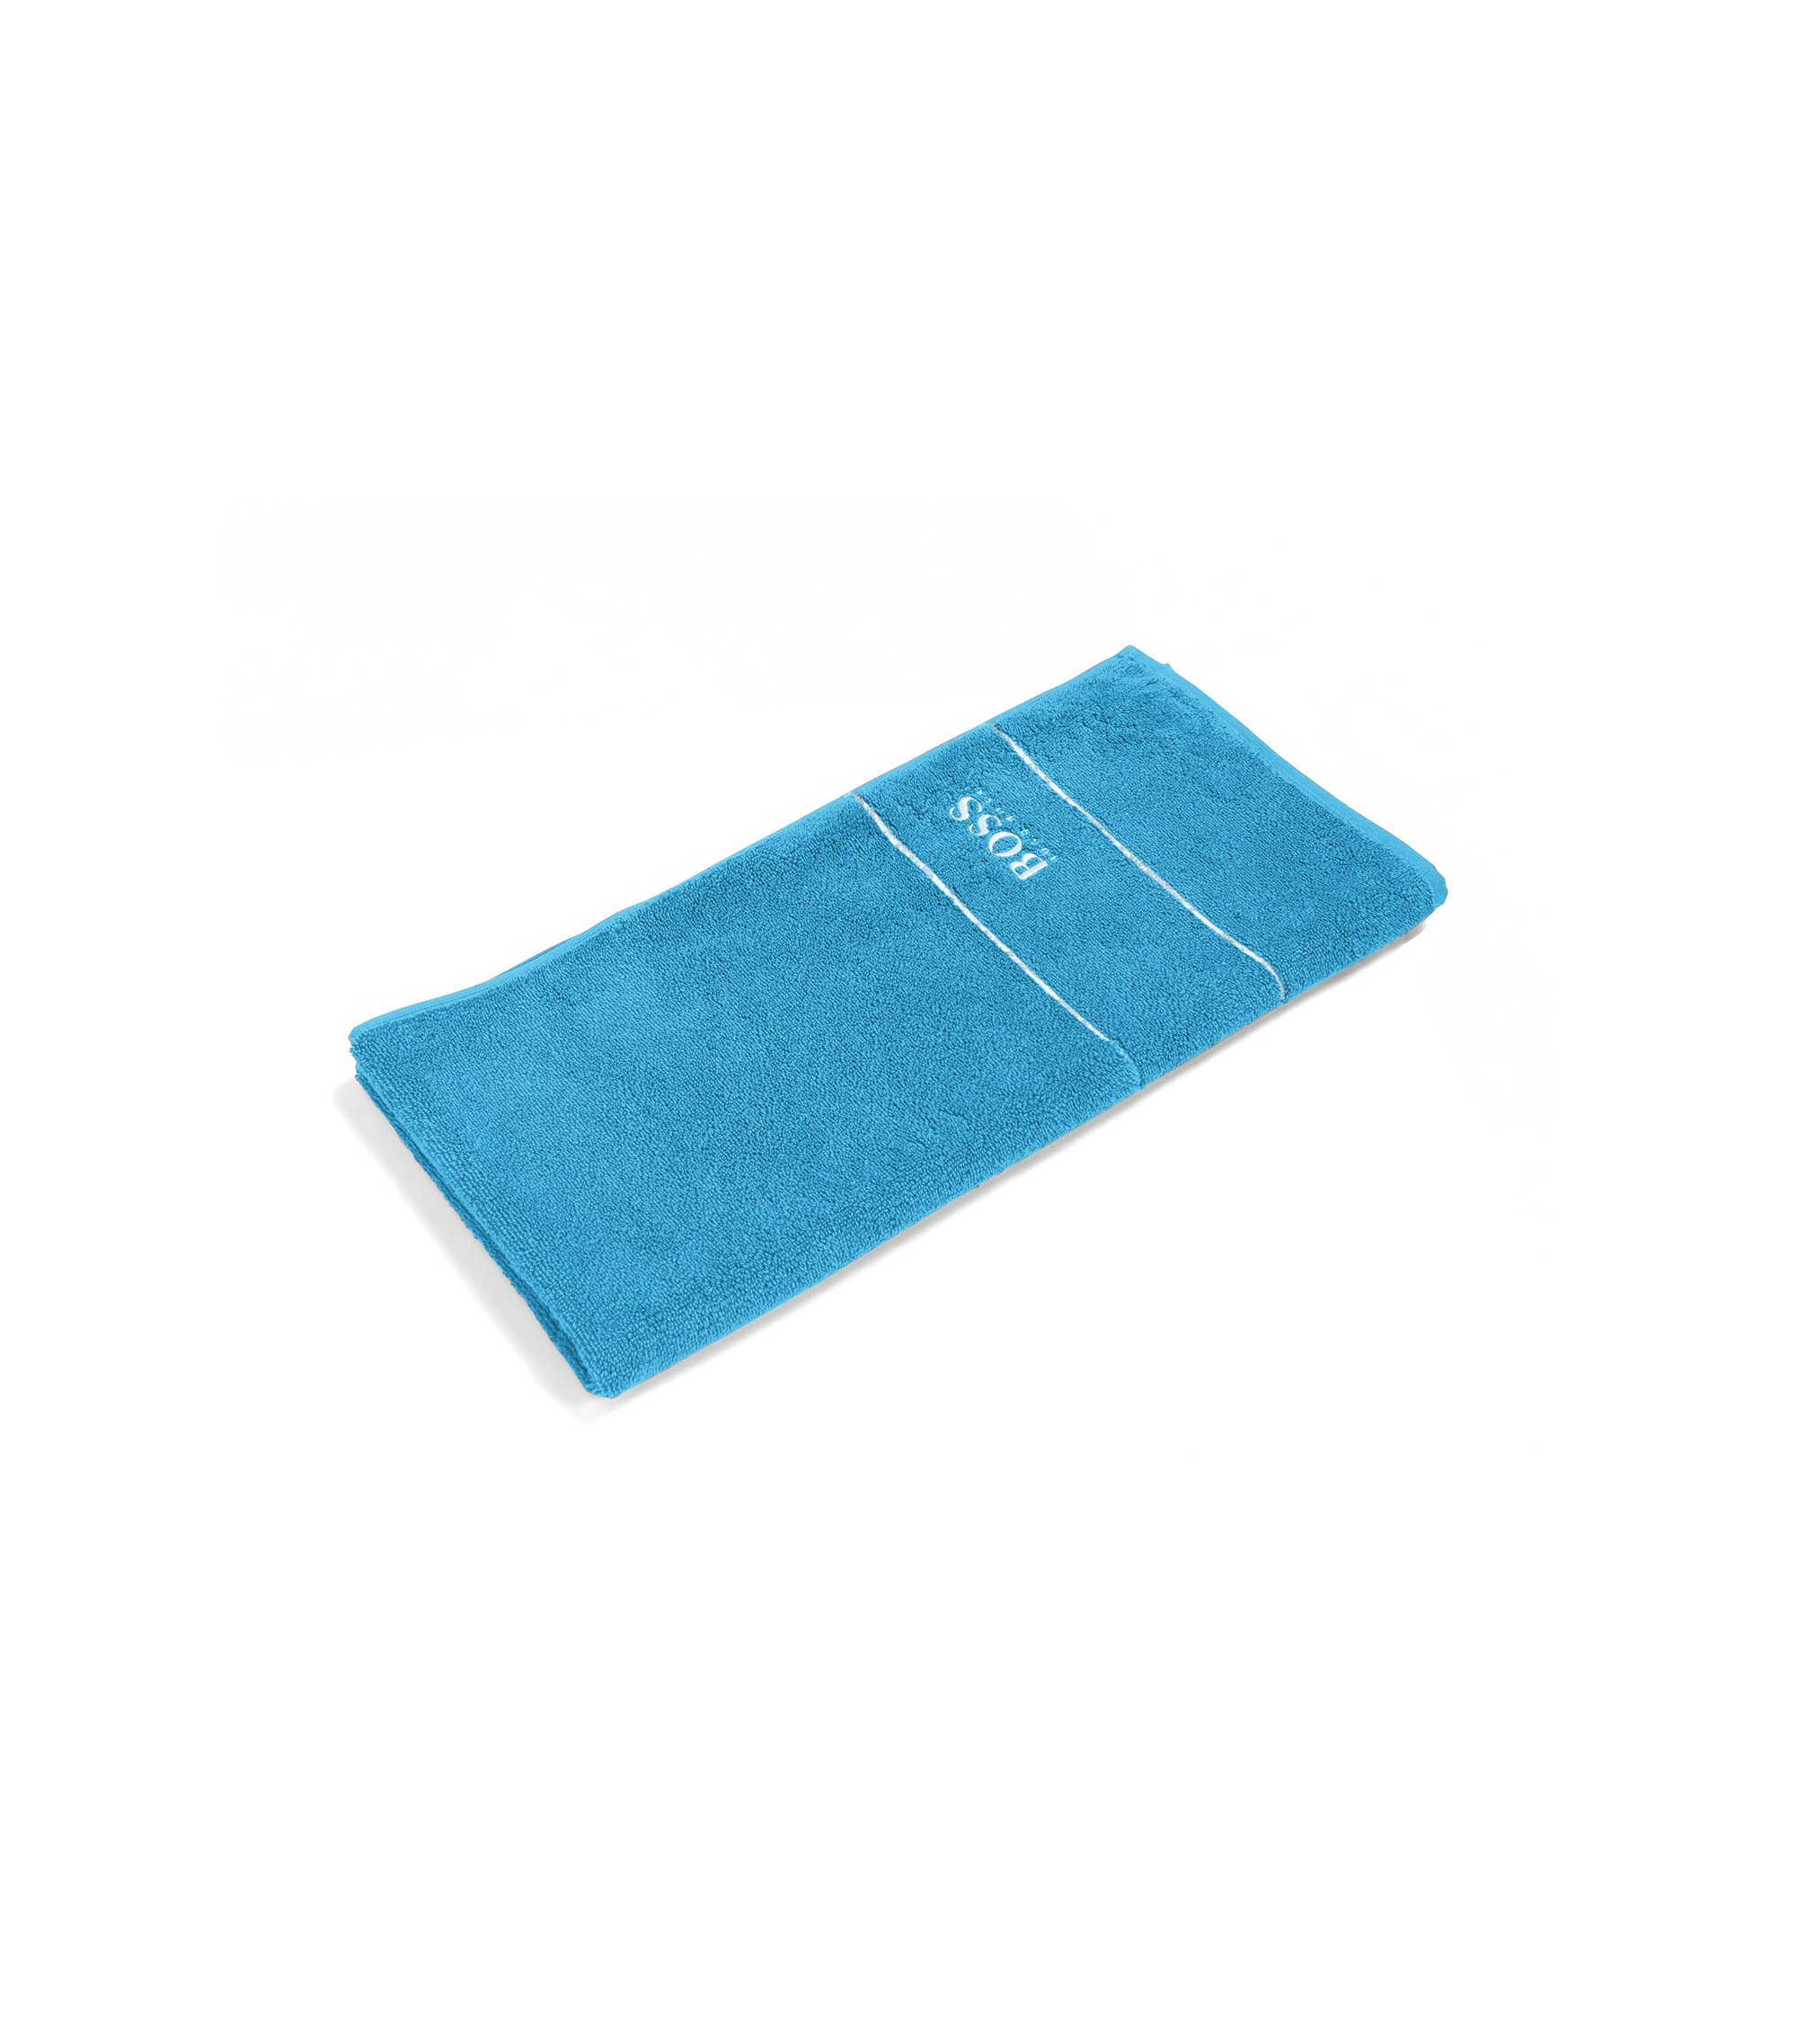 Finest Egyptian cotton hand towel with logo border, Blue